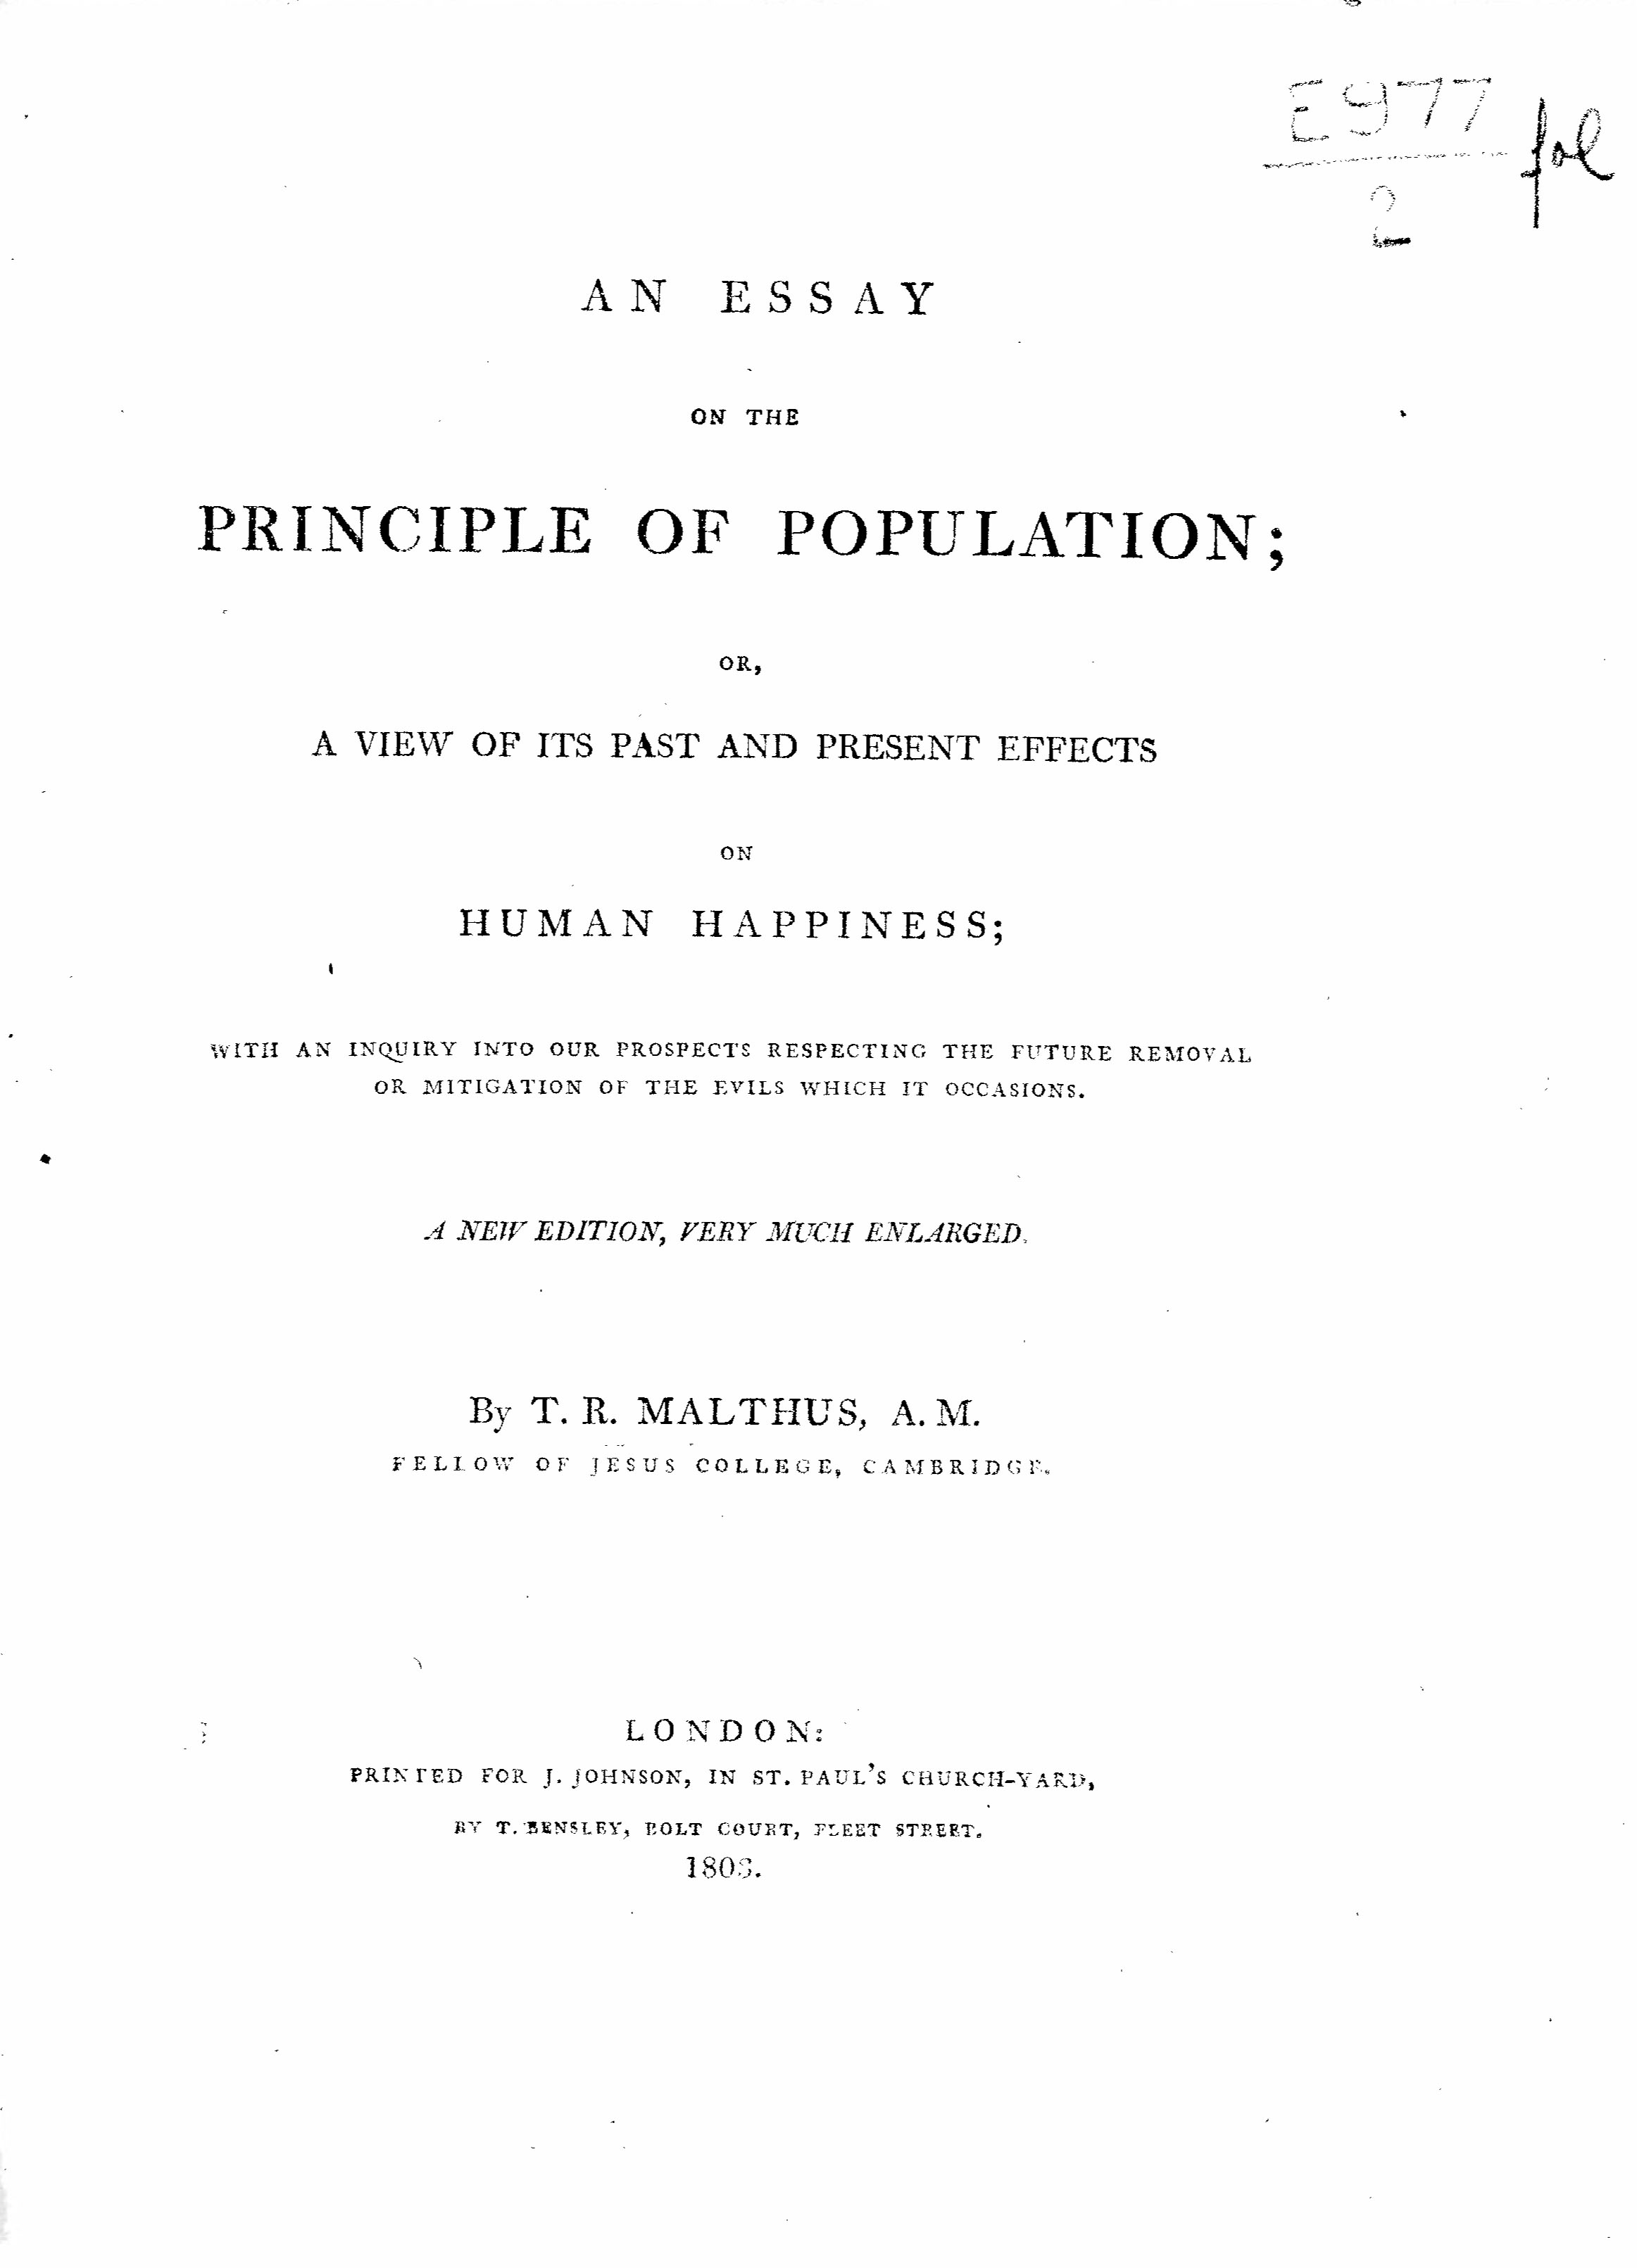 003 Thomas Malthus An Essay On The Principle Of Population 2fol Marvelous Summary Analysis Argued In His (1798) That Full